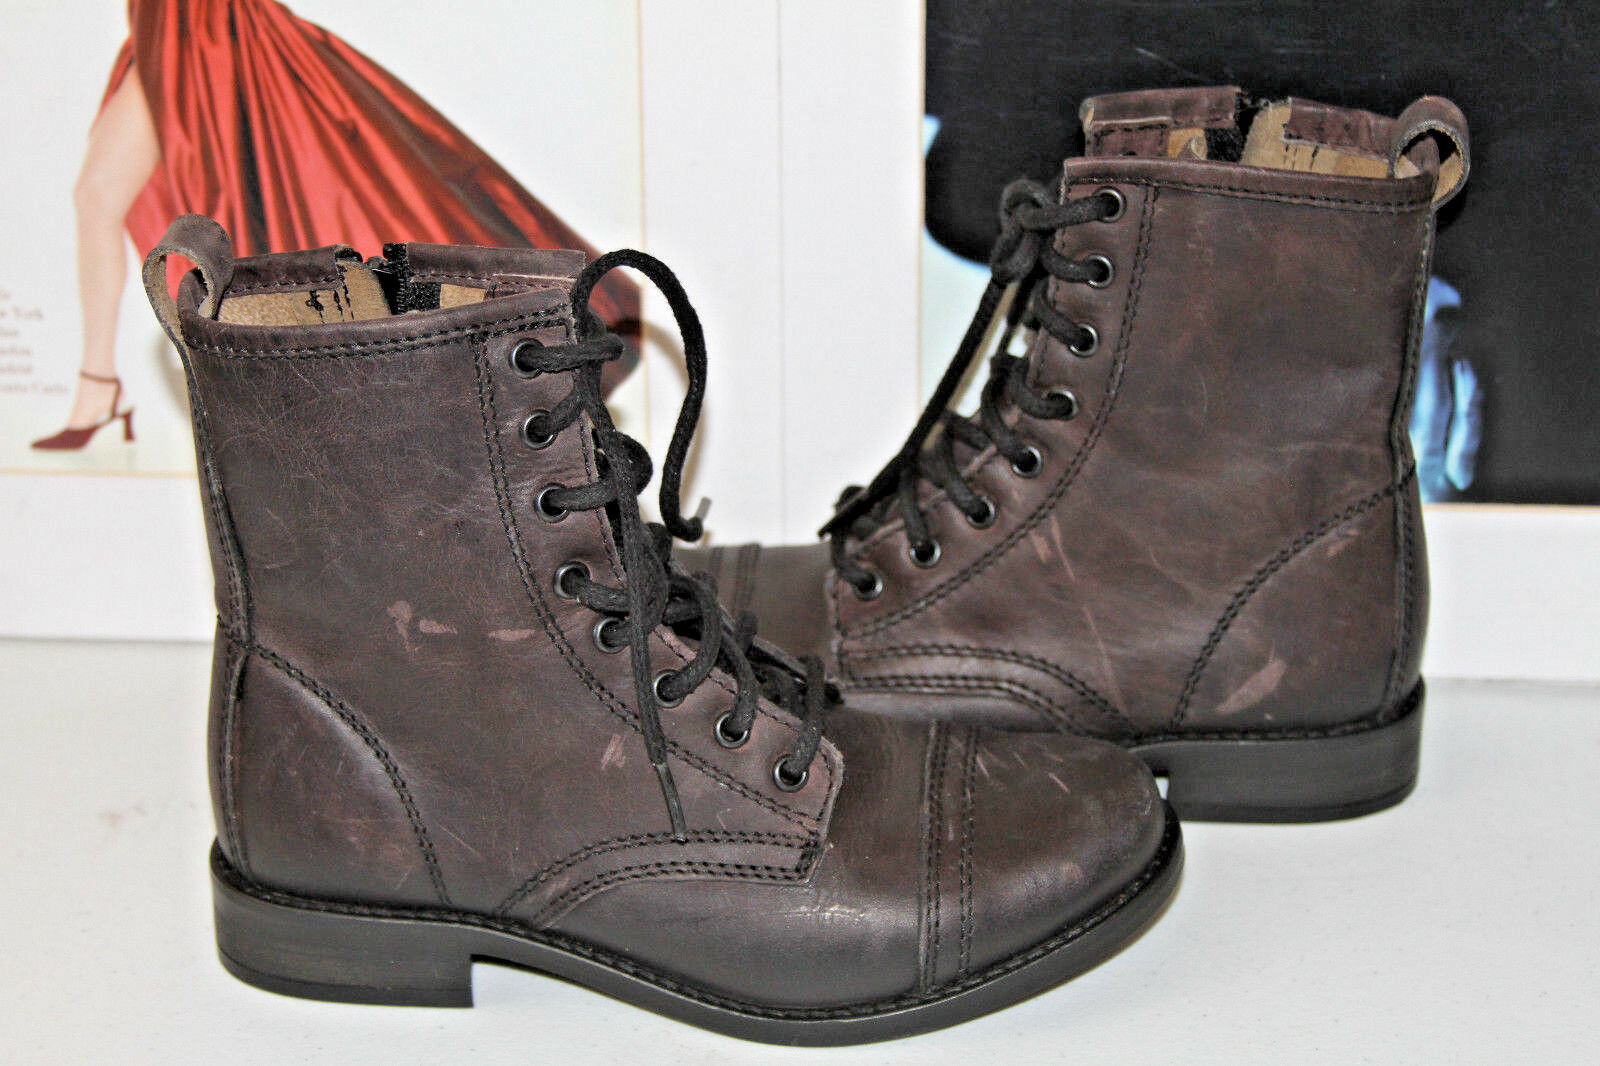 77 STEVE MADDEN CHARRIE COMBAT DISTRESSED nero ANKLE stivali  SZ 6  MSRP 195